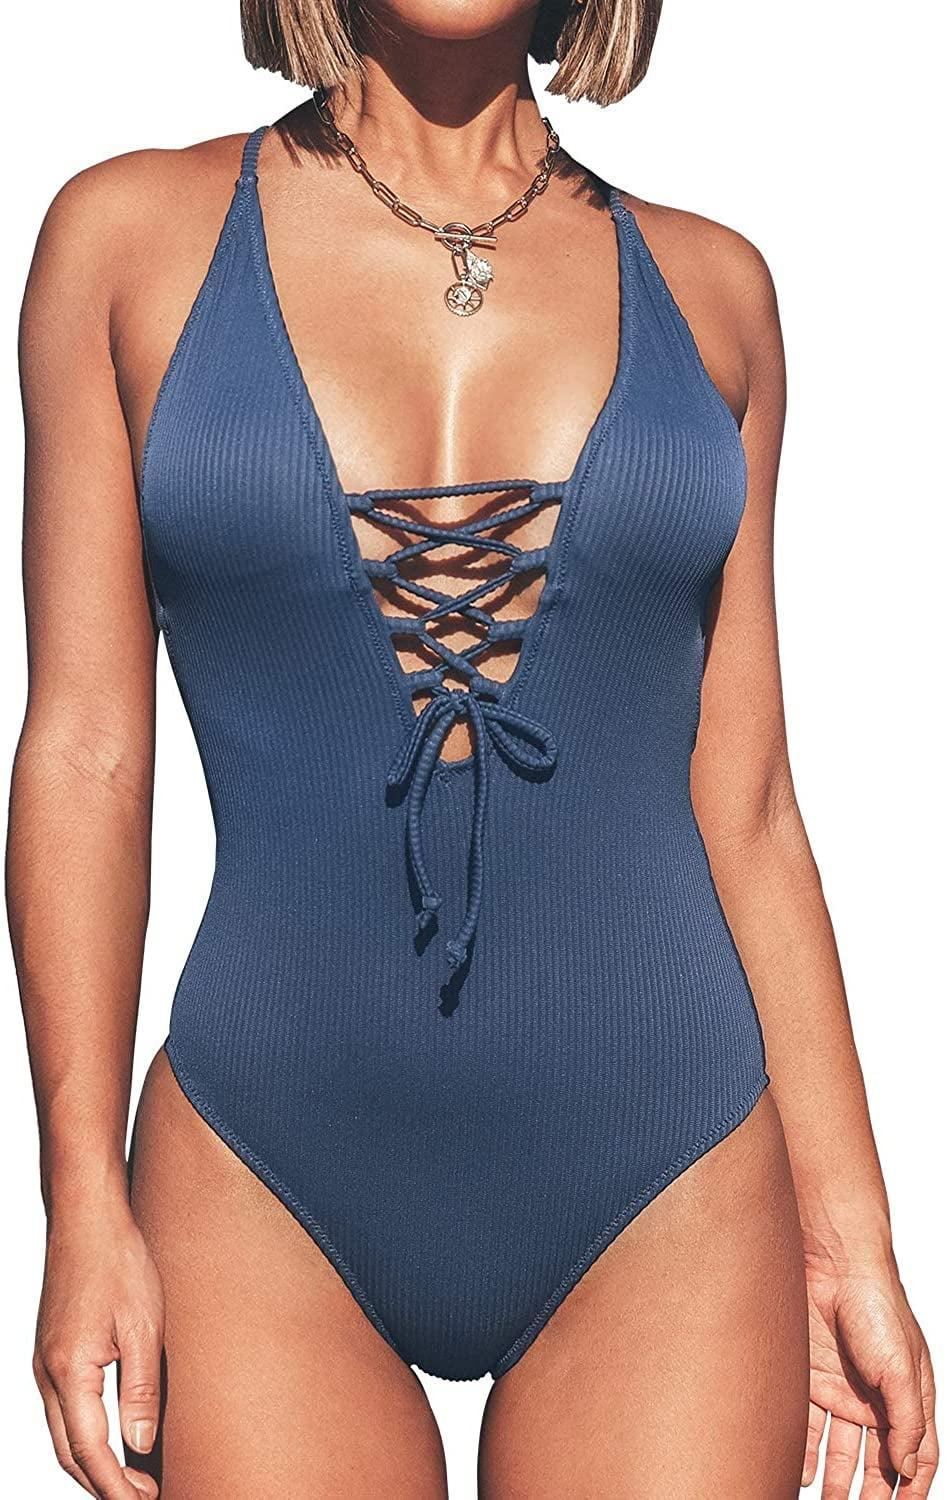 <p>This <span>Cupshe Lace Up One-Piece Swimsuit</span> ($30) will make you feel sexy and confident.</p>